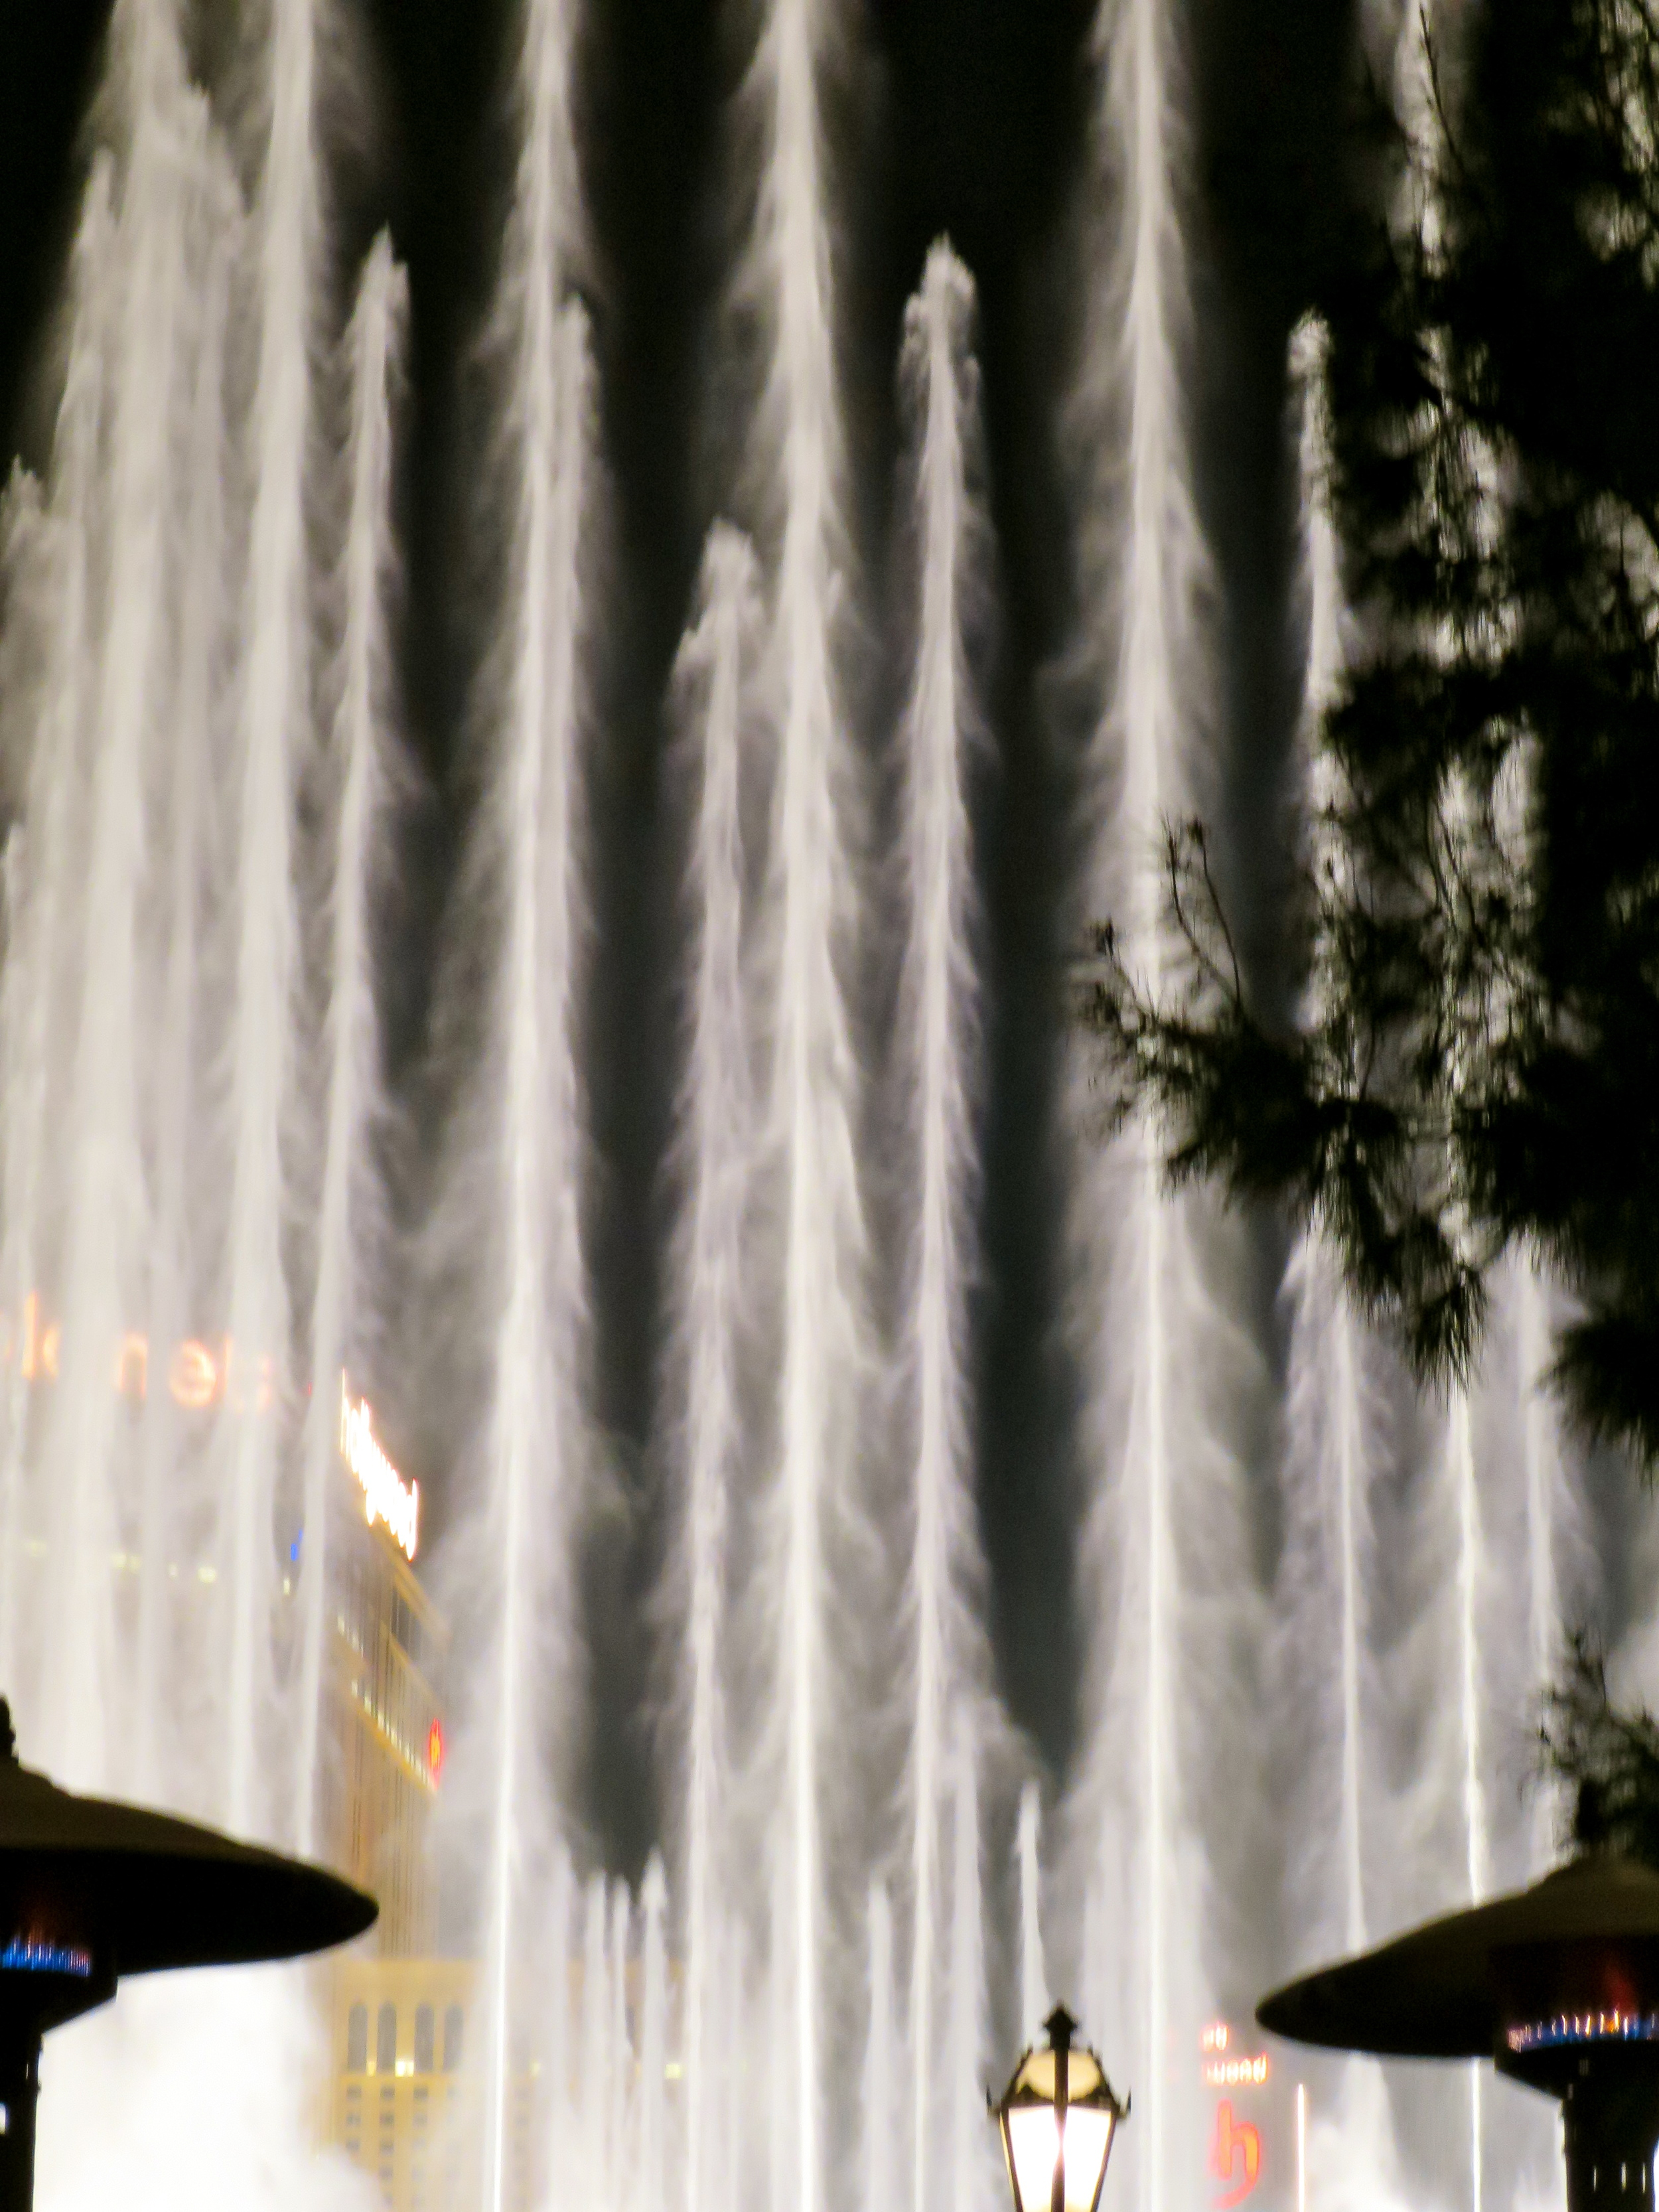 Amazing height of the fountains.